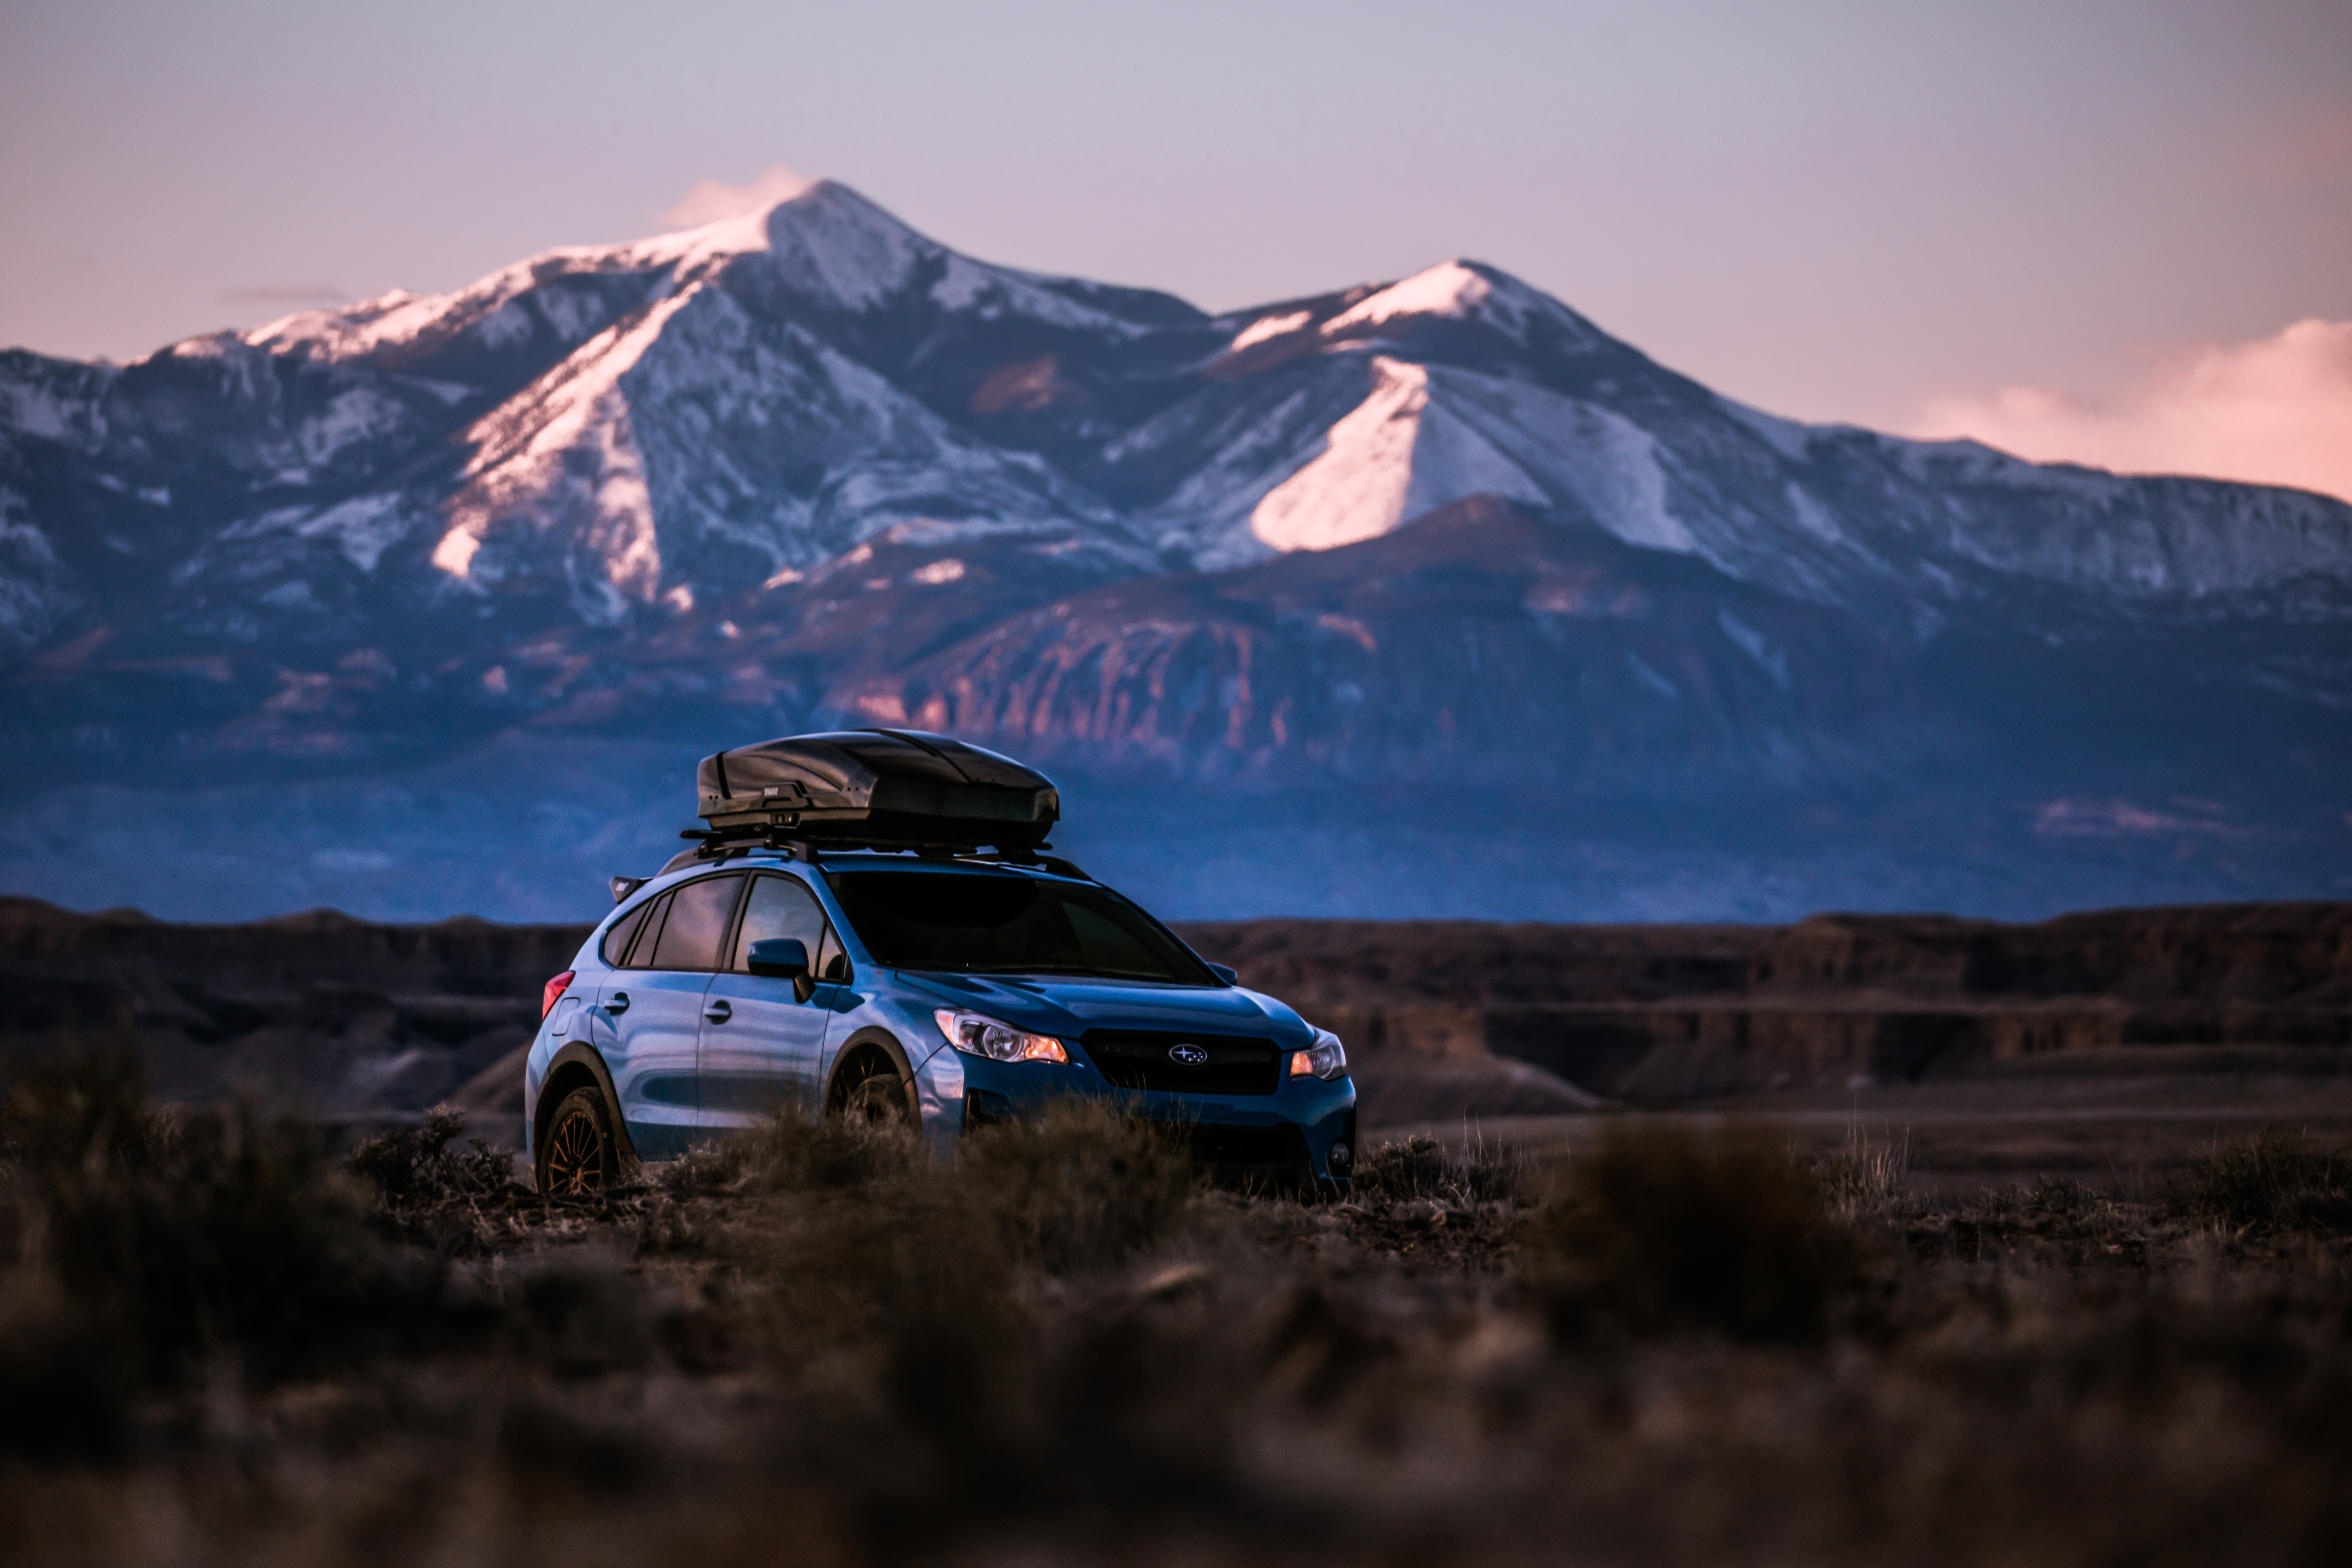 110489 Screensavers and Wallpapers Subaru for phone. Download Mountains, Subaru, Cars, Country, Crossover, Trip, Subaru Outback pictures for free